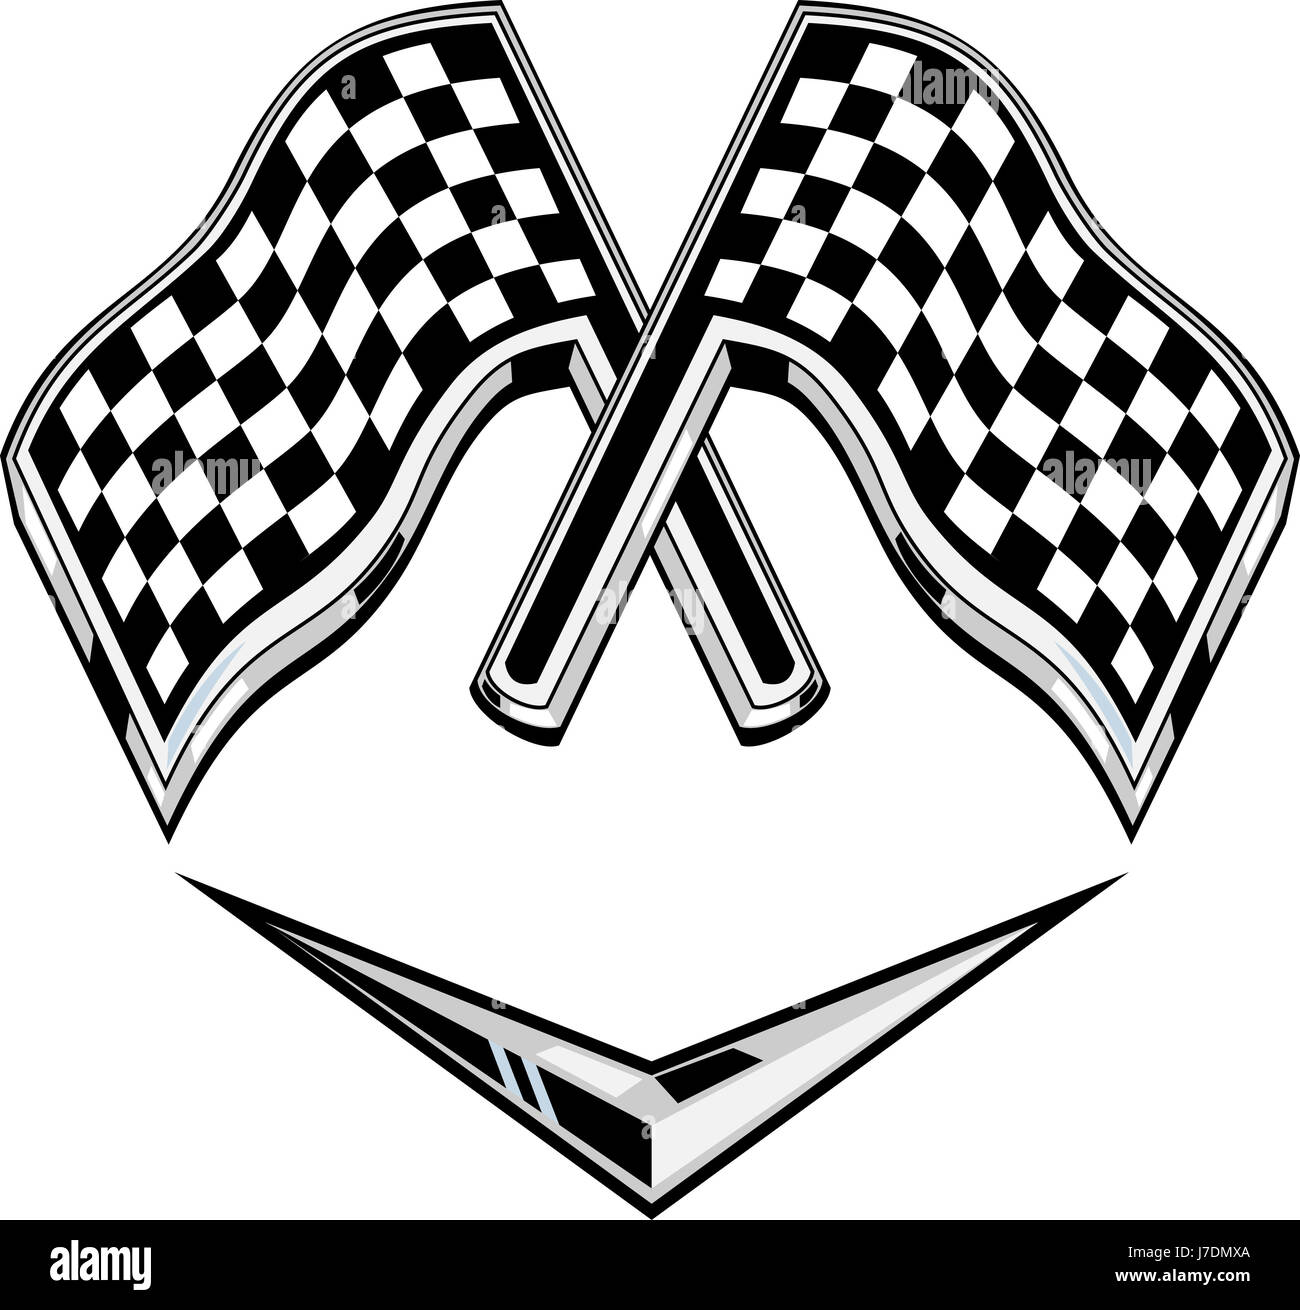 racing stripes stock photos racing stripes stock images alamy Green & Black 06 Mustang racing illustration flag metallic checkered chevron crossed isolated racing stock image